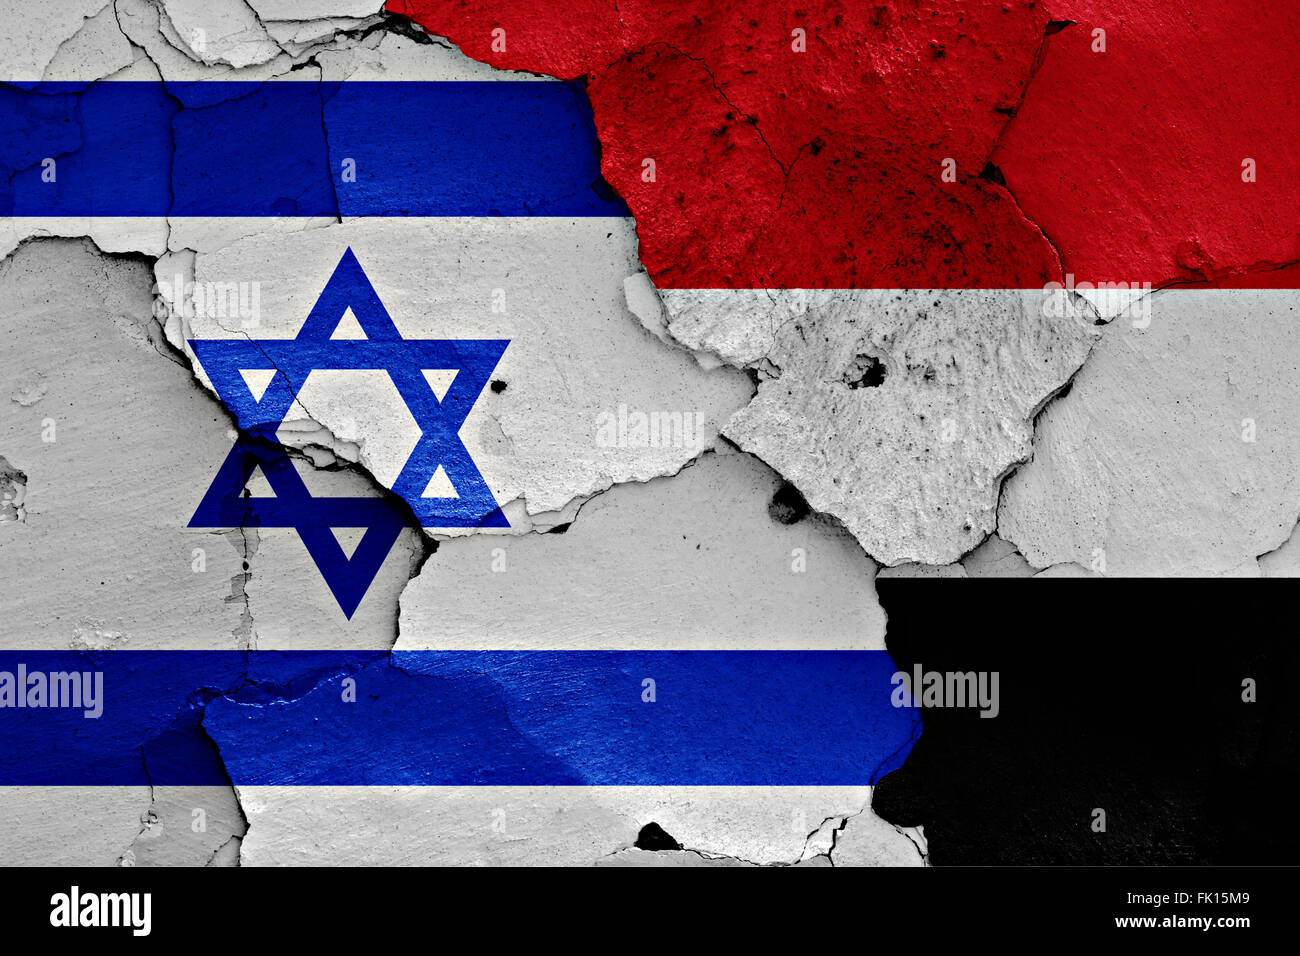 flags of Israel and Yemen painted on cracked wall - Stock Image